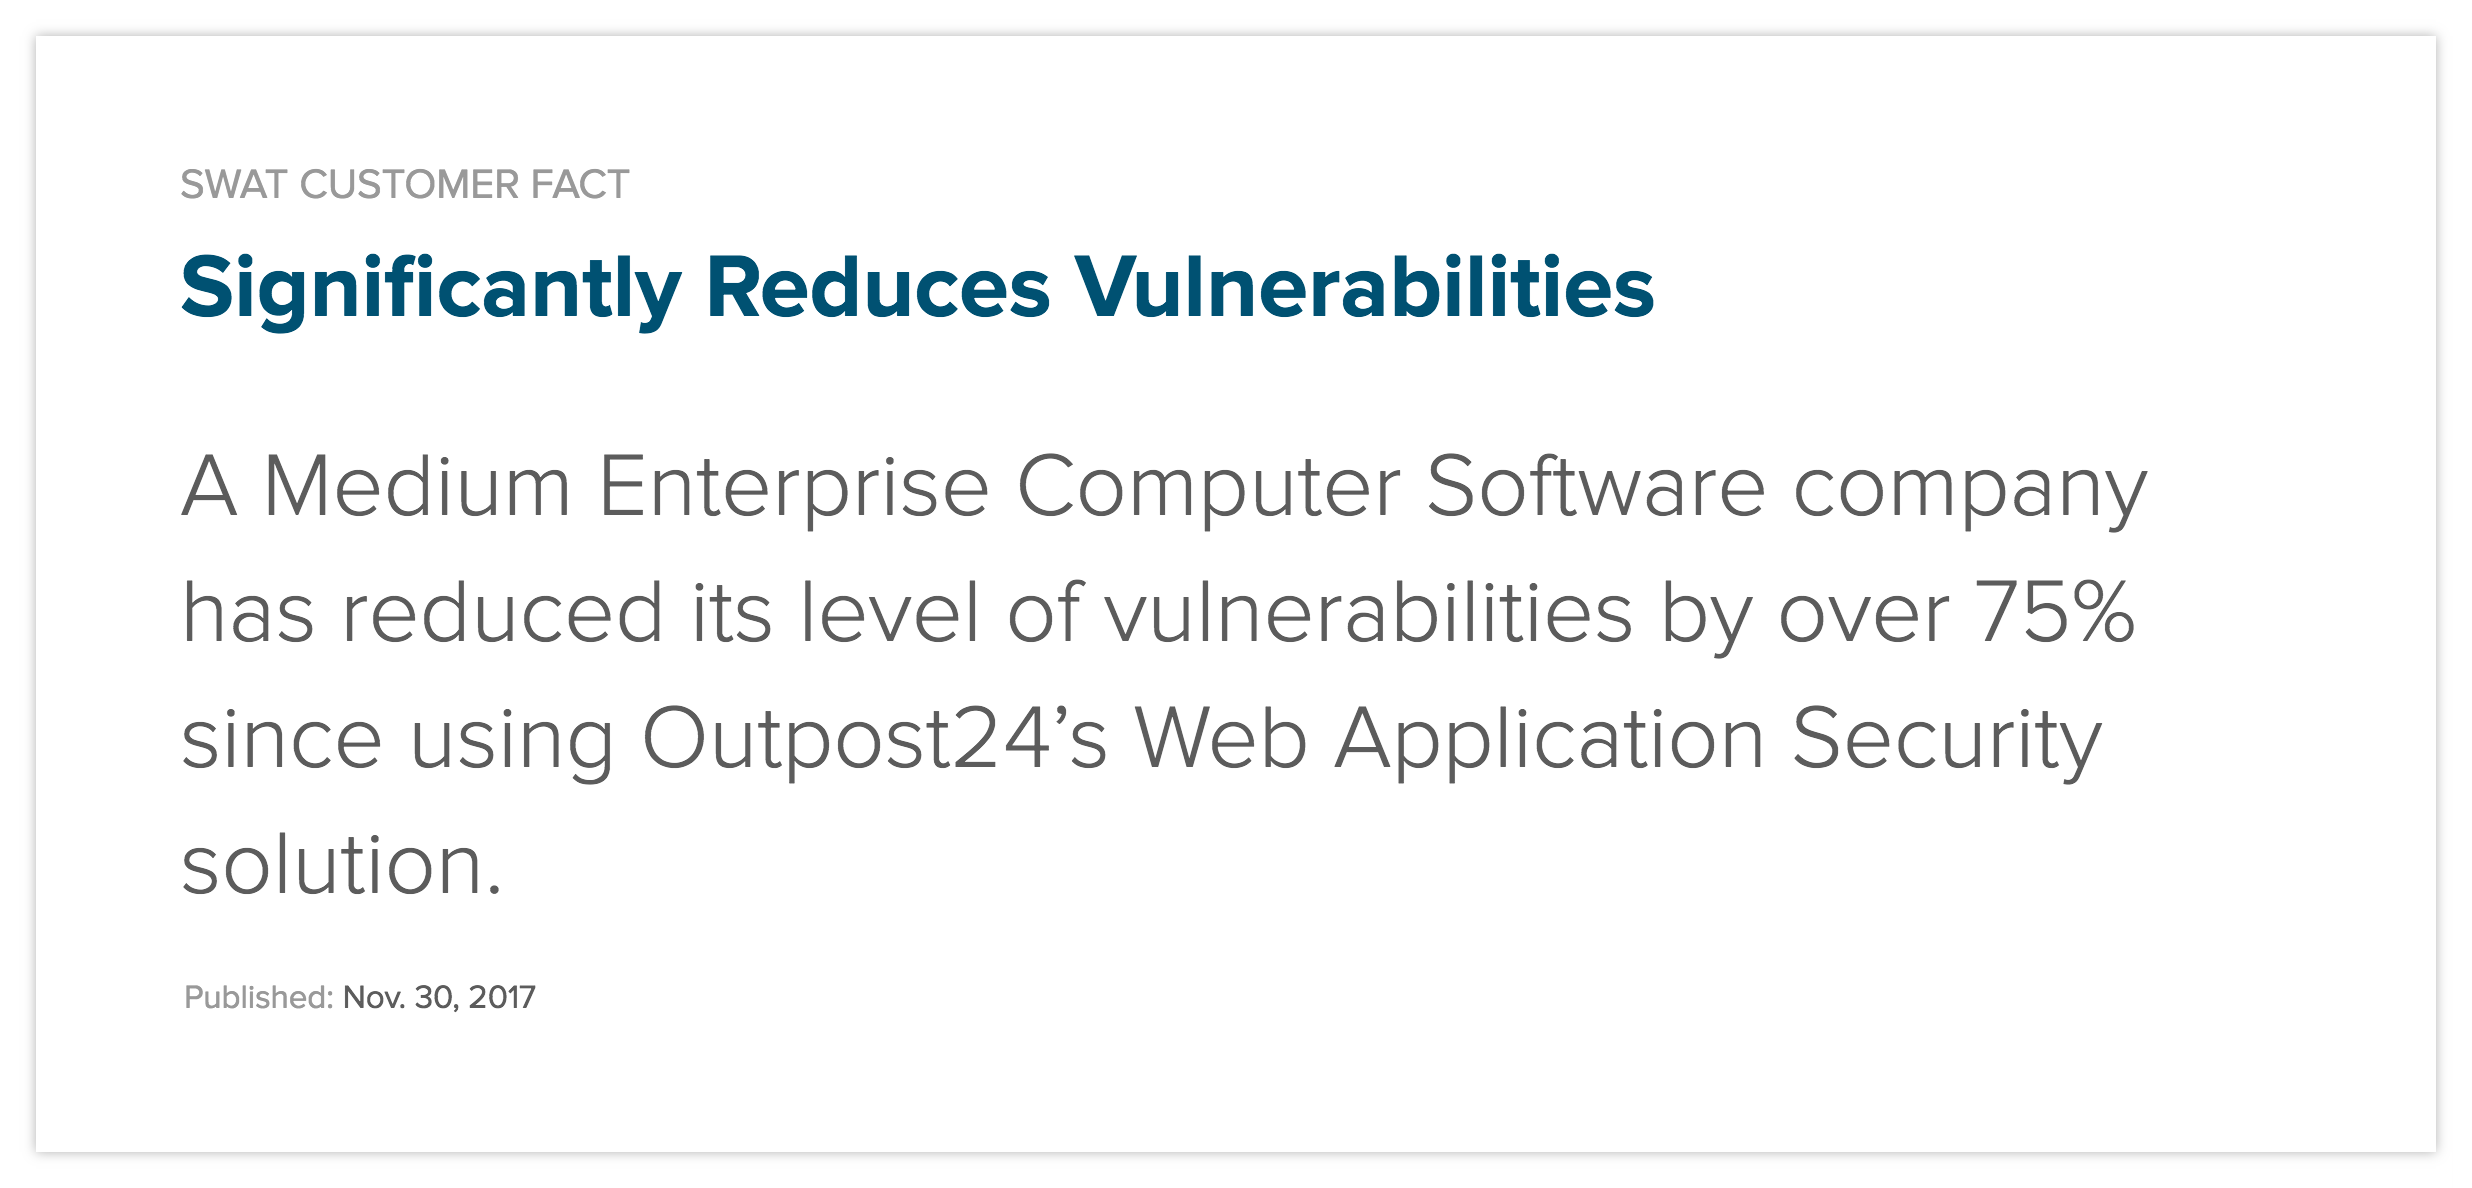 A Medium Enterprise Computer Software company has reduced its level of vulnerabilities by over 75% since using Outpost24's Web Application Security solution